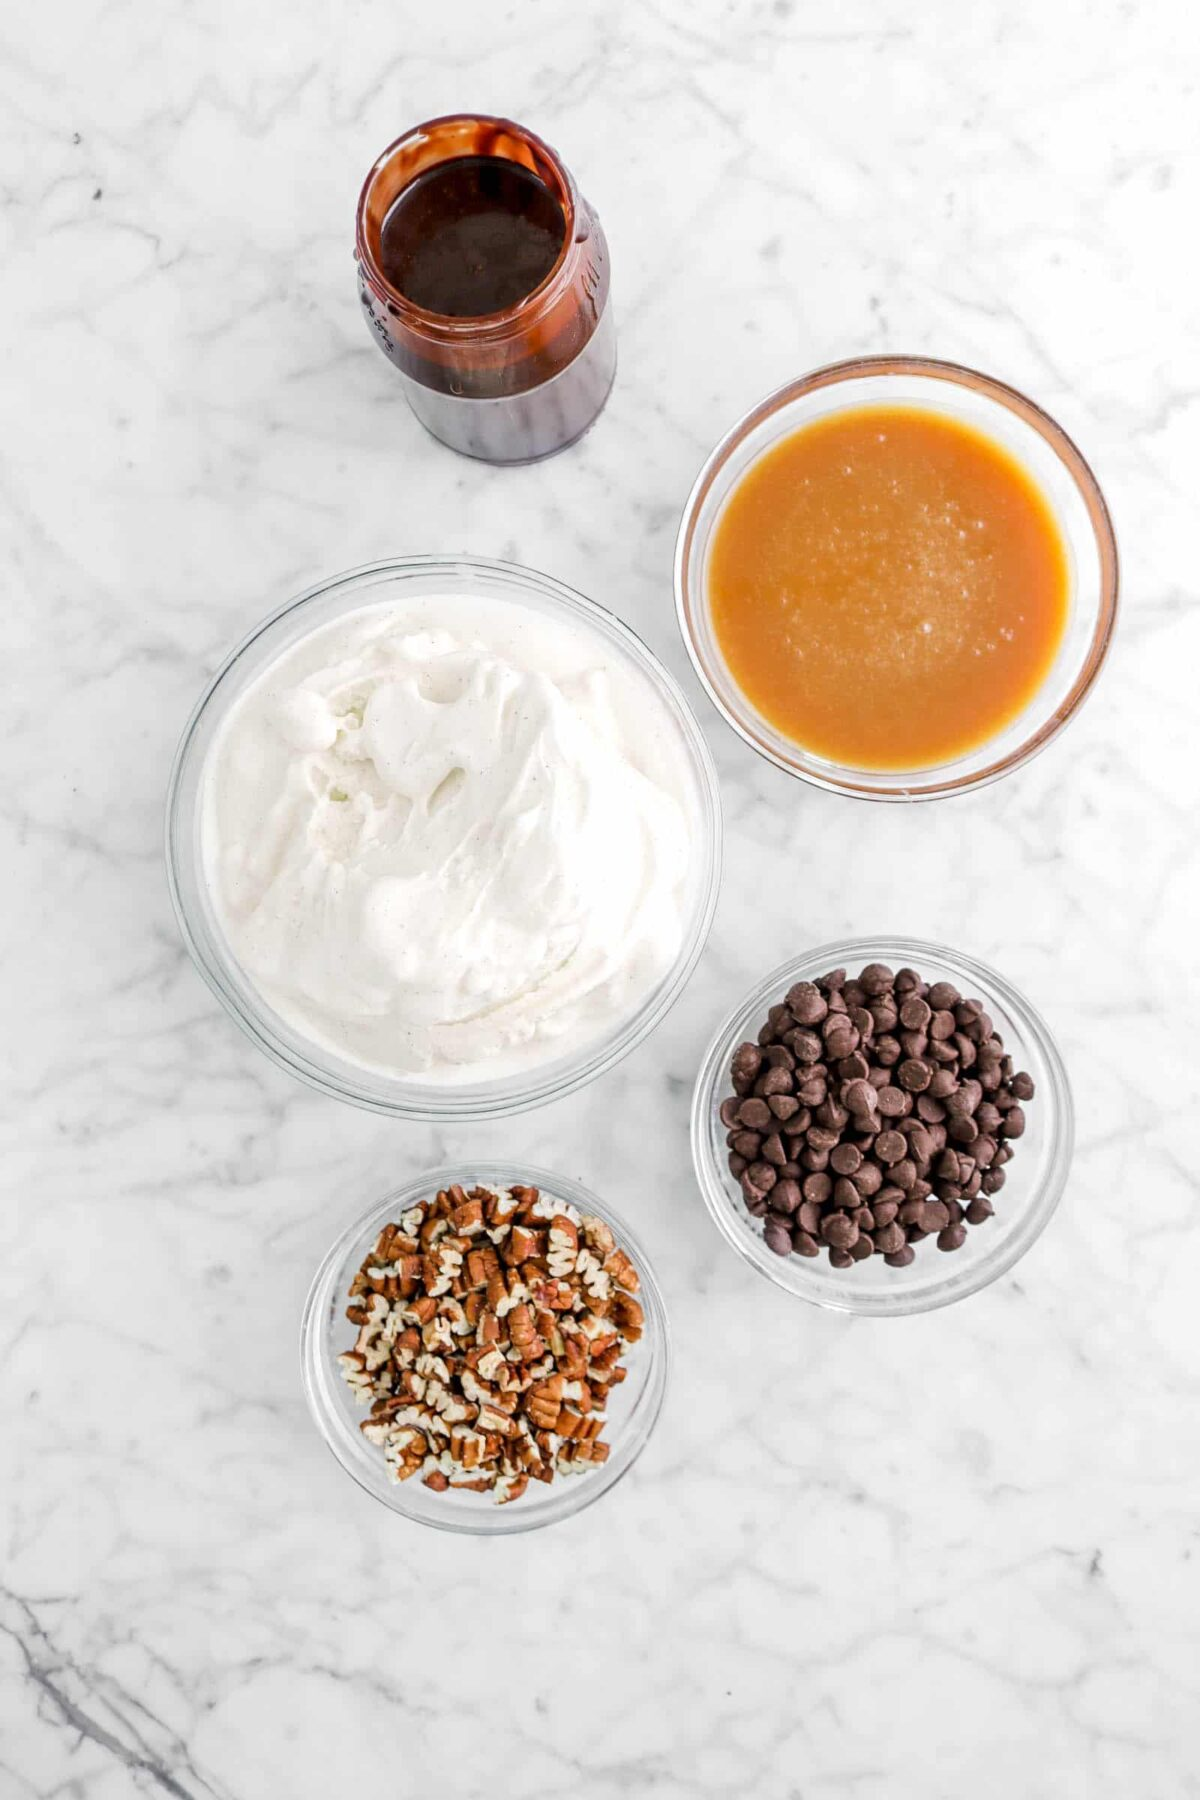 chocolate sauce, caramel sauce, ice cream, chocolate chips, and chopped pecans on marble counter